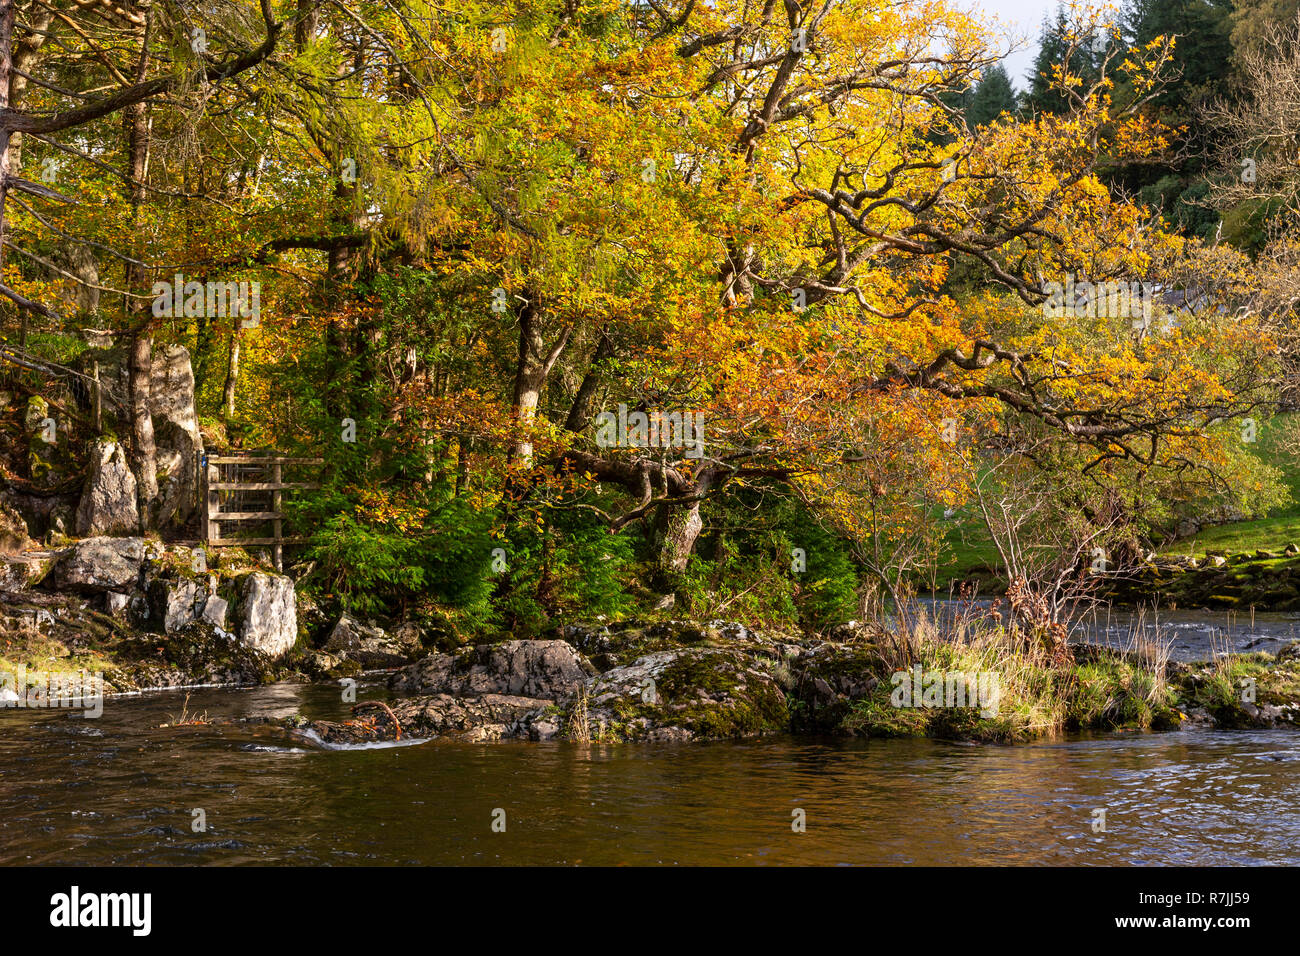 Trees and river in autumn at Betws-y-Coed, Snowdonia, North Wales Stock Photo